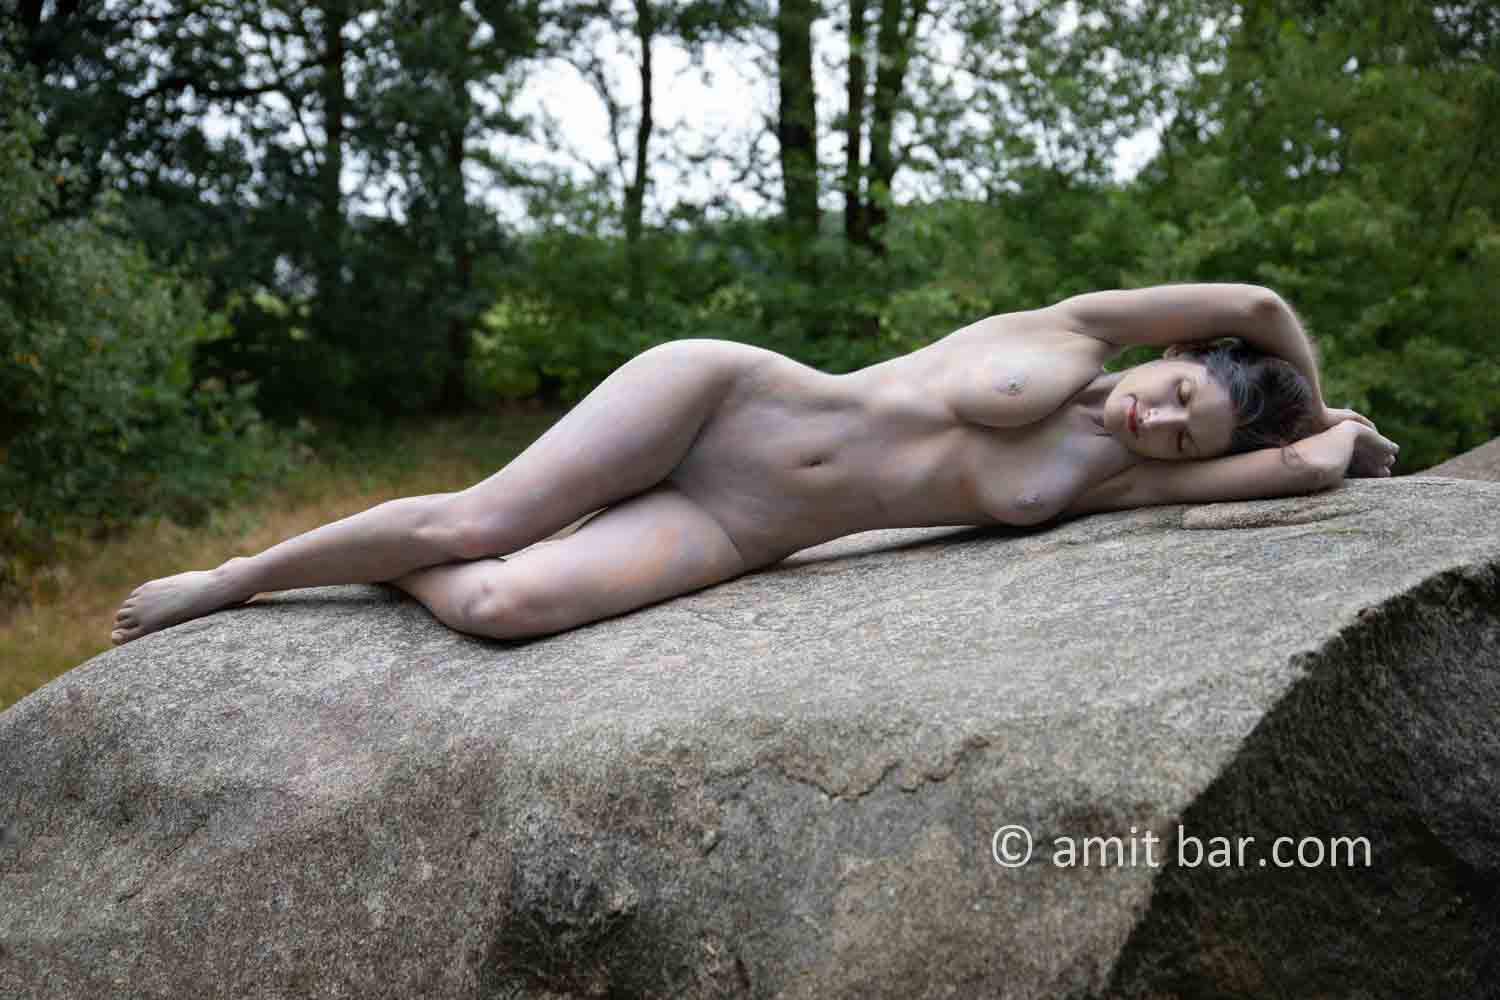 Dolmen woman body-painting IV: body painted Elle is walking and laying around and on the huge stones of the dolmen at Drenthe, The Netherlands